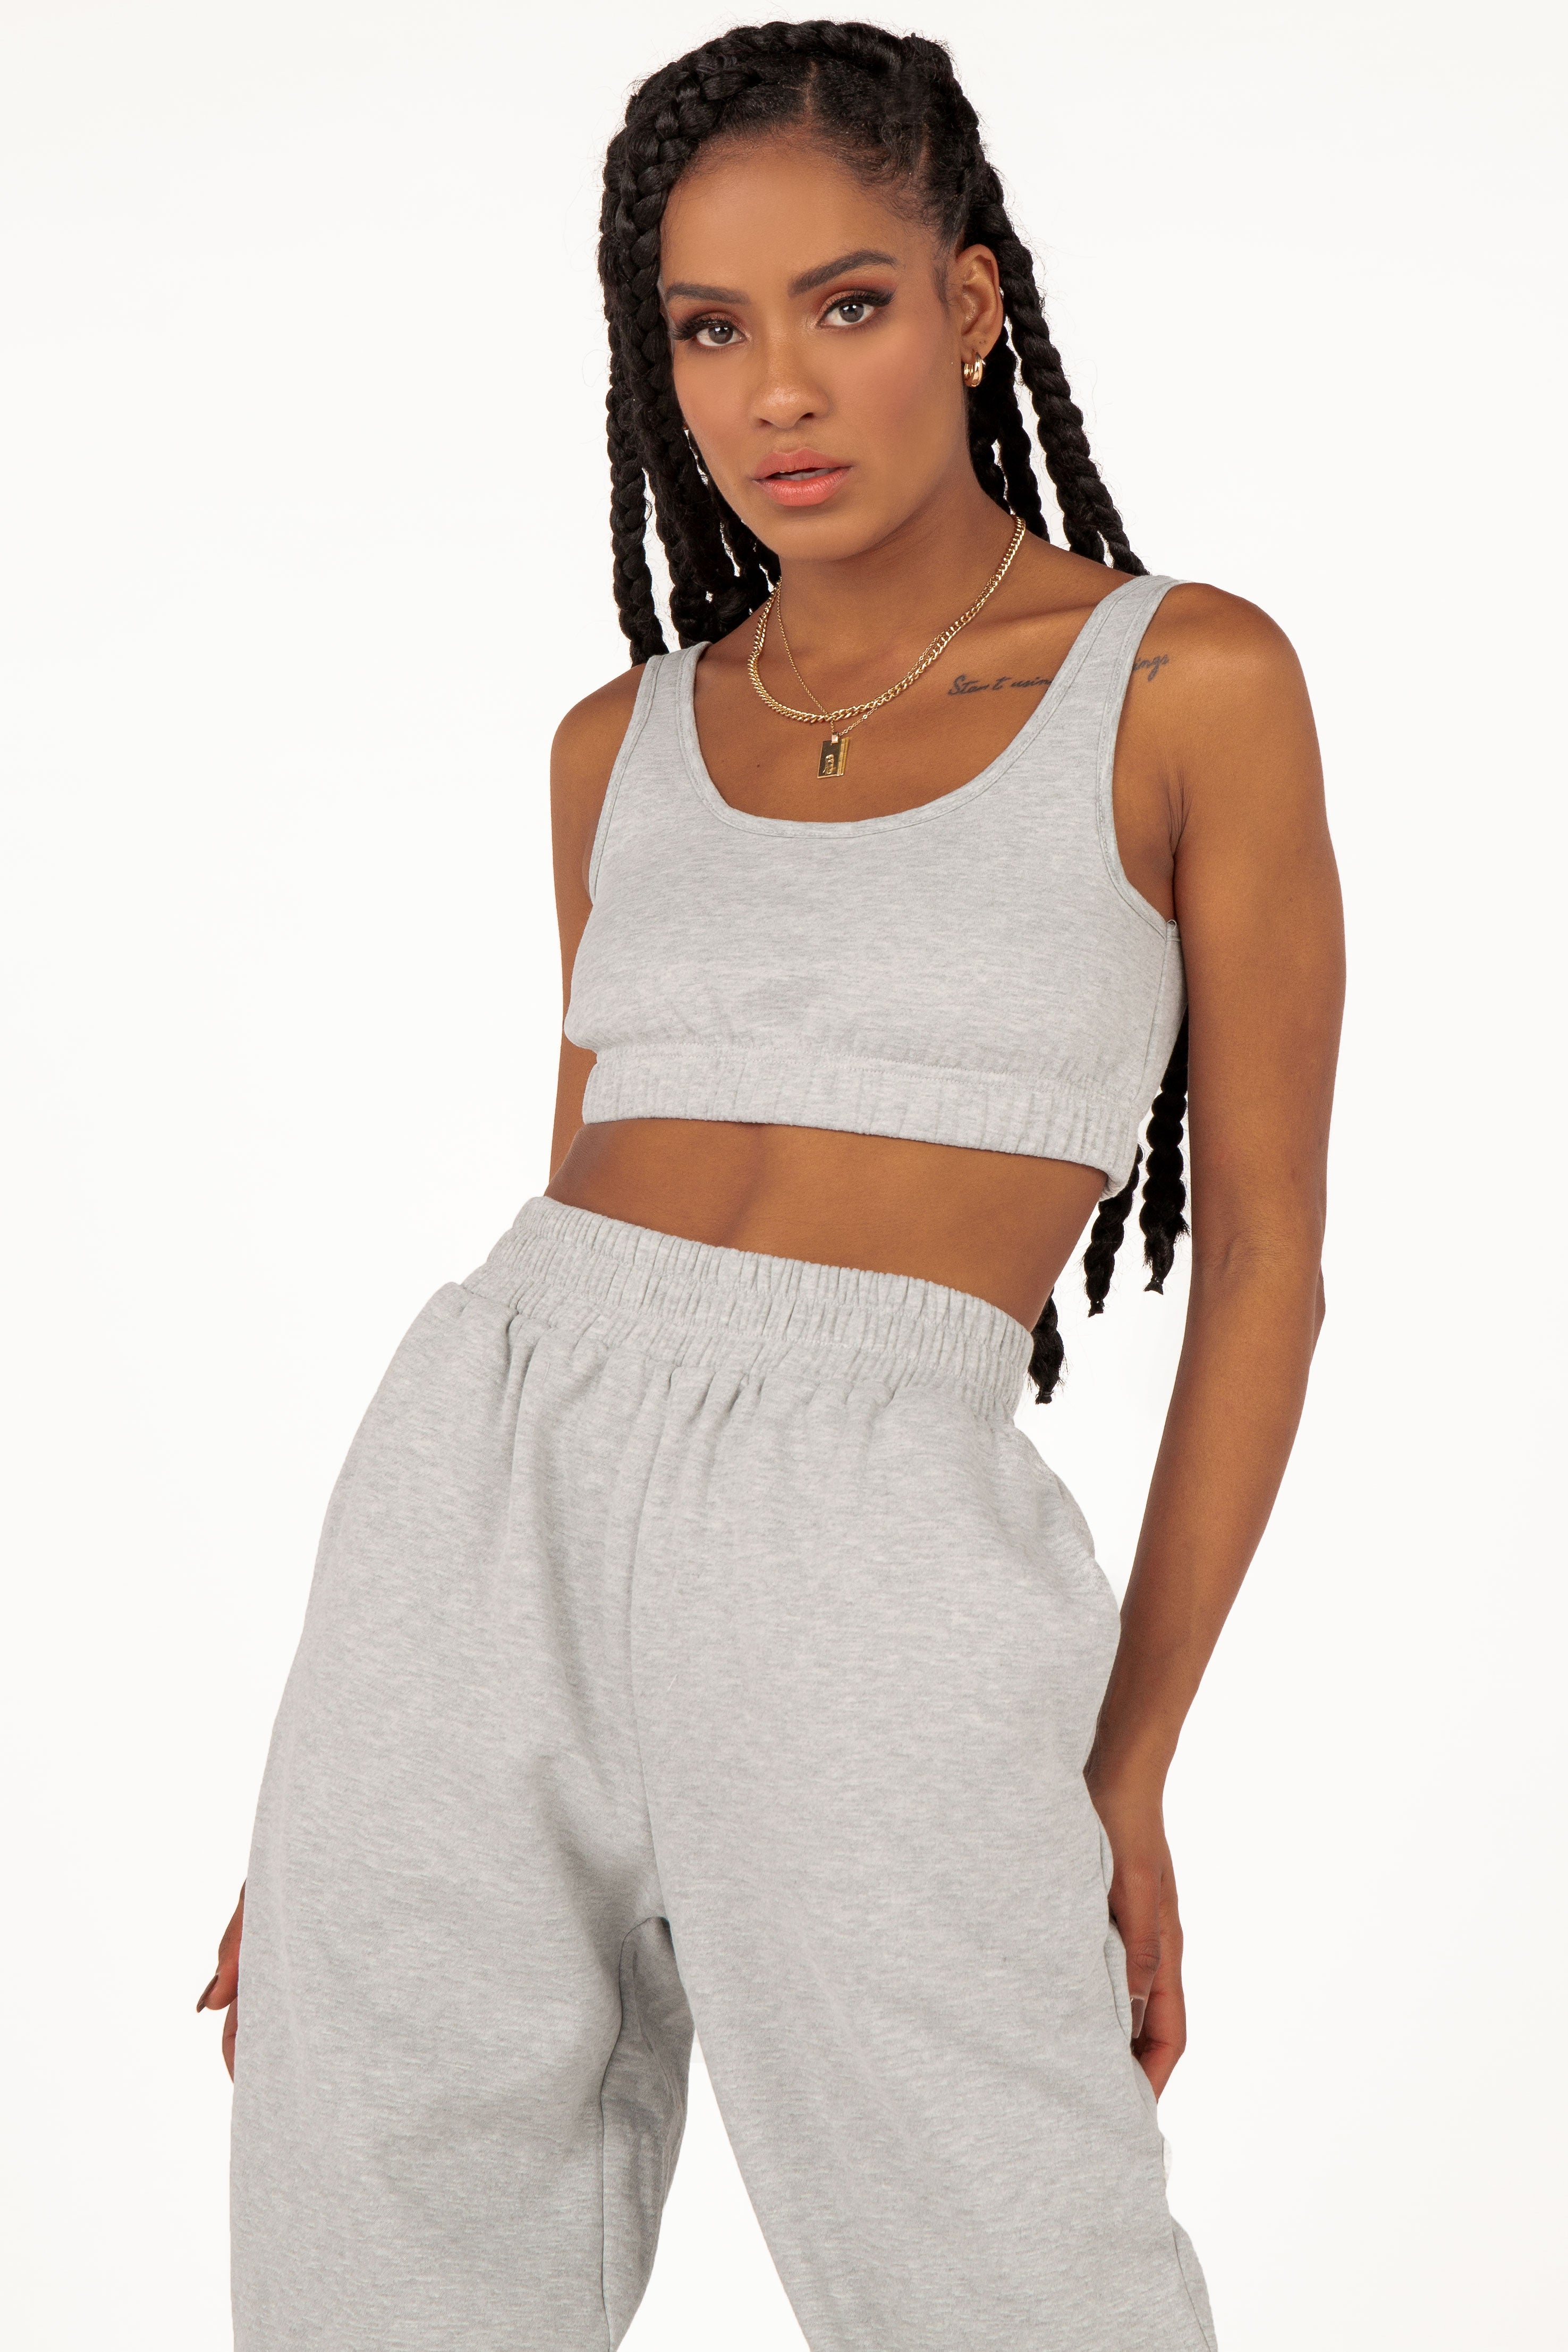 BY DYLN JAX GREY MARLE CROP